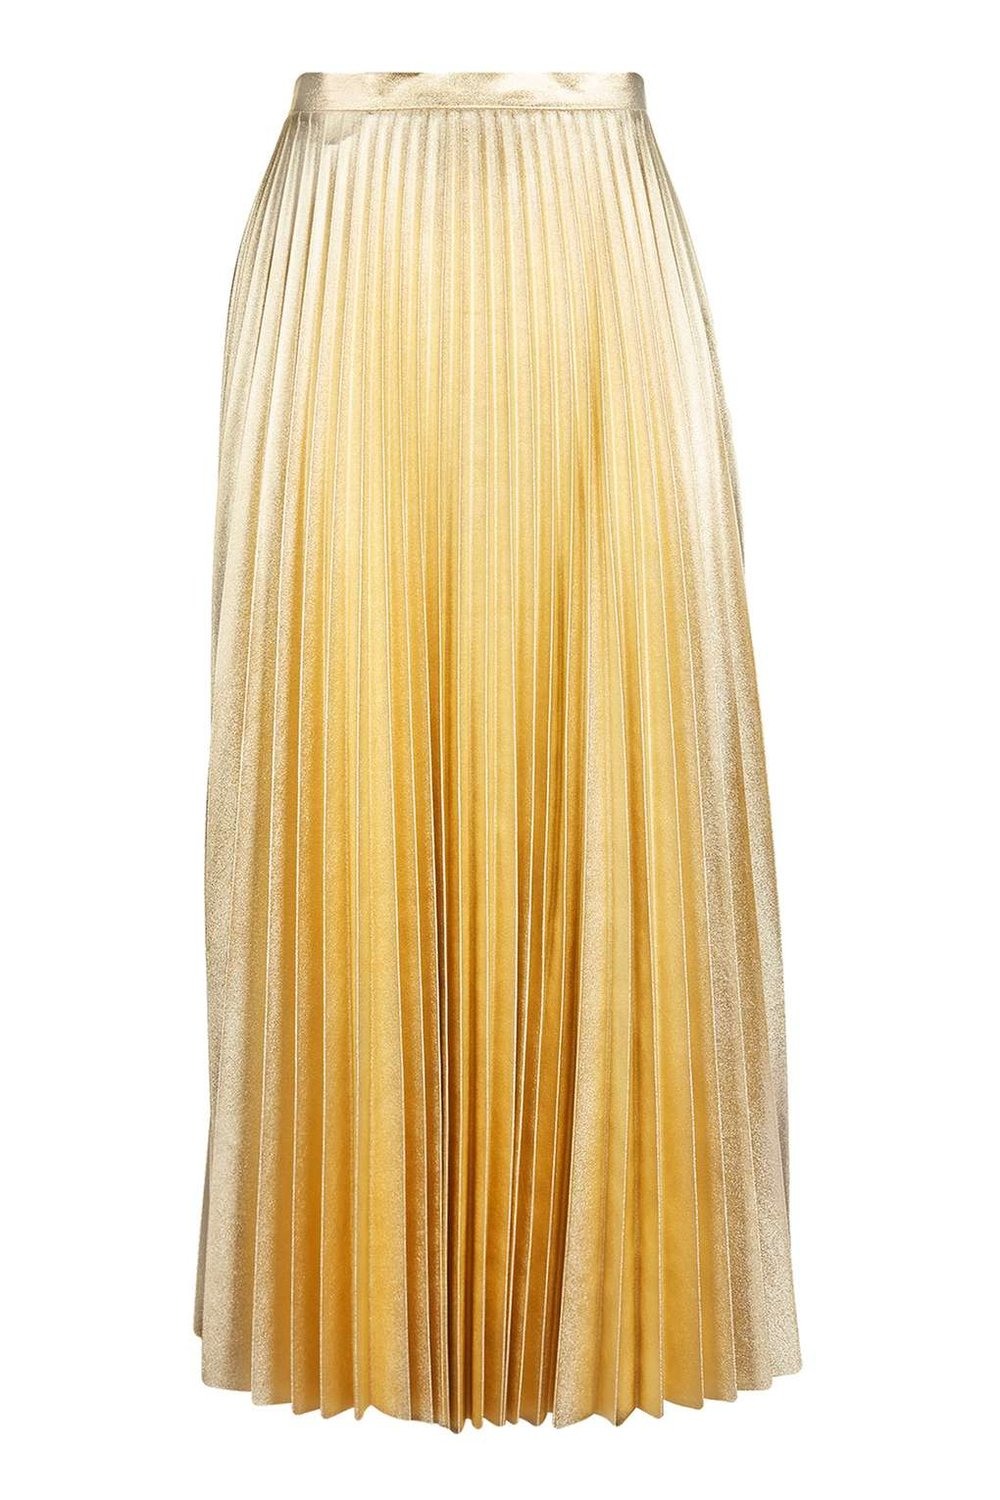 TOPSHOP GOLD METALLIC PLEAT SKIRT